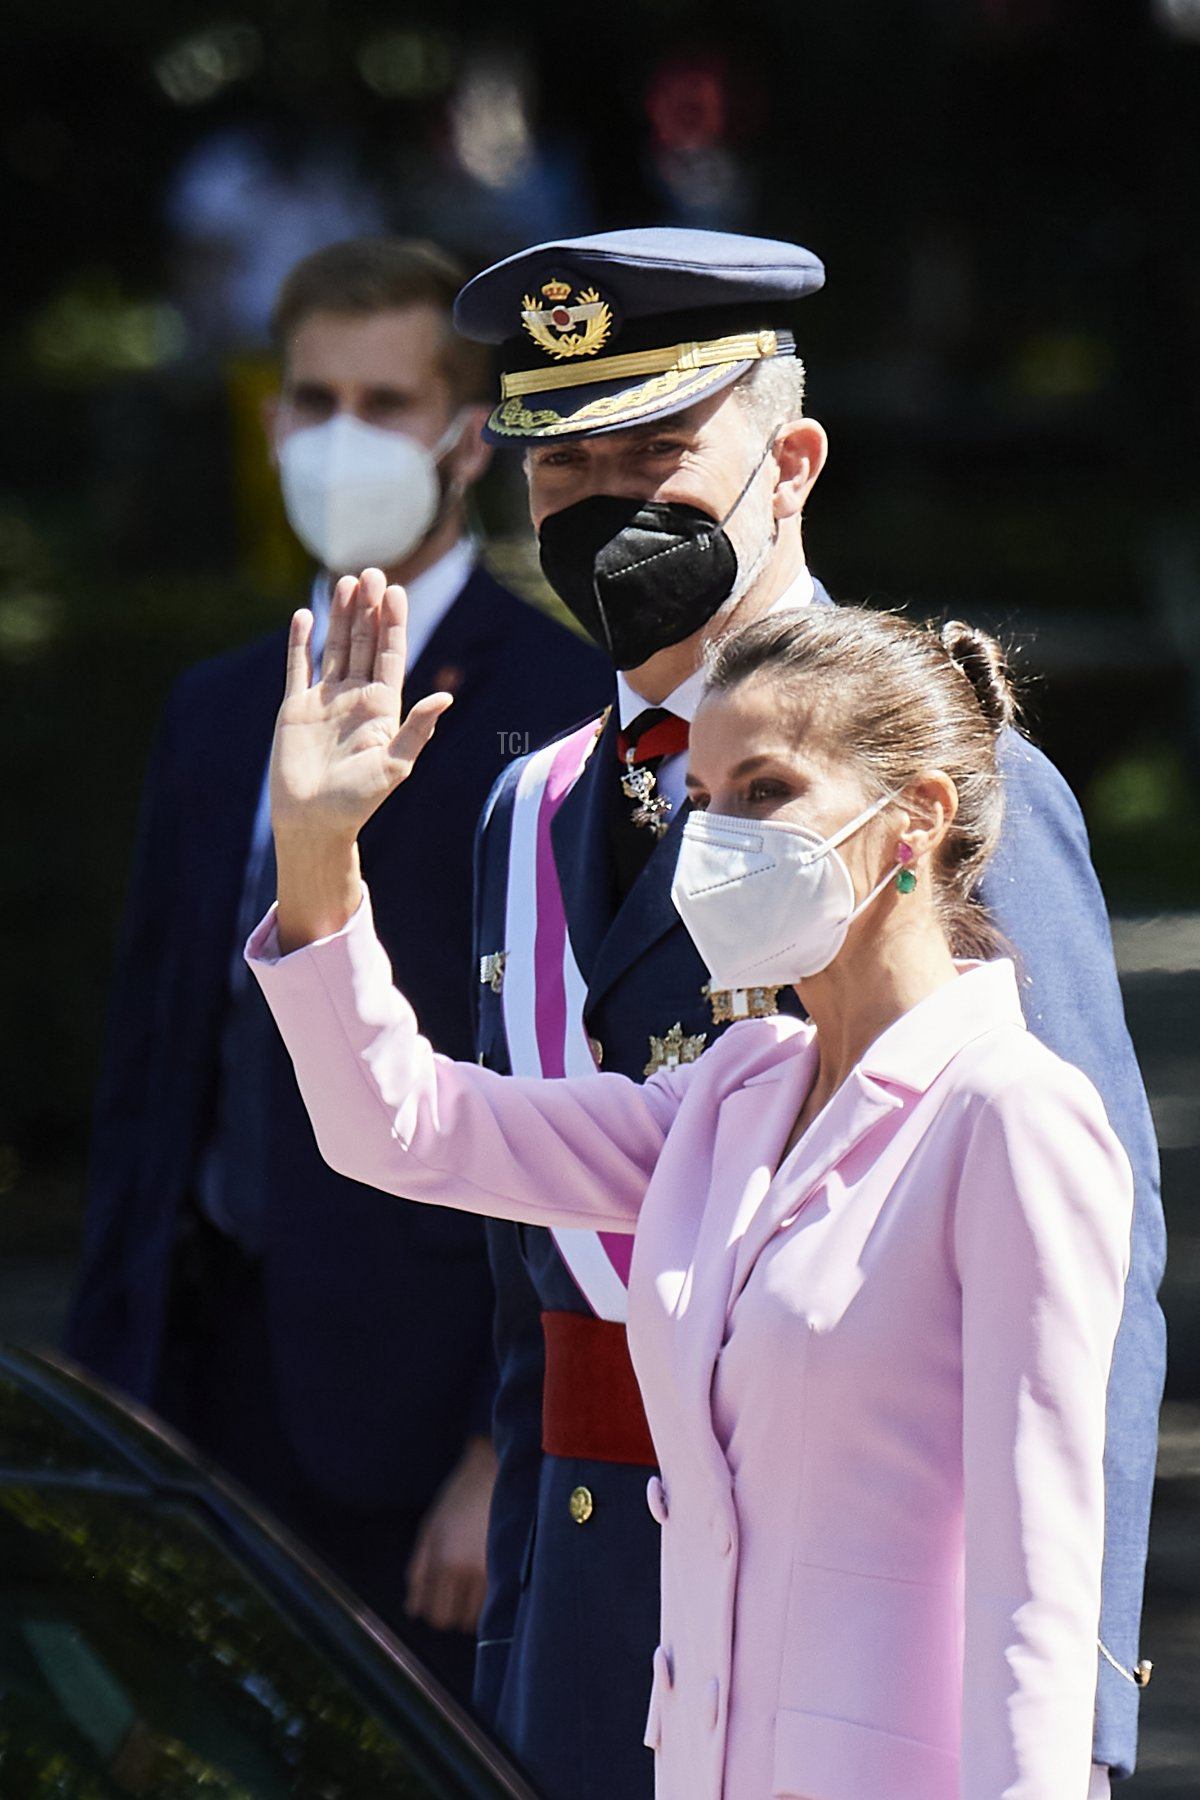 Queen Letizia of Spain attends Armed Forces day on May 29, 2021 in Madrid